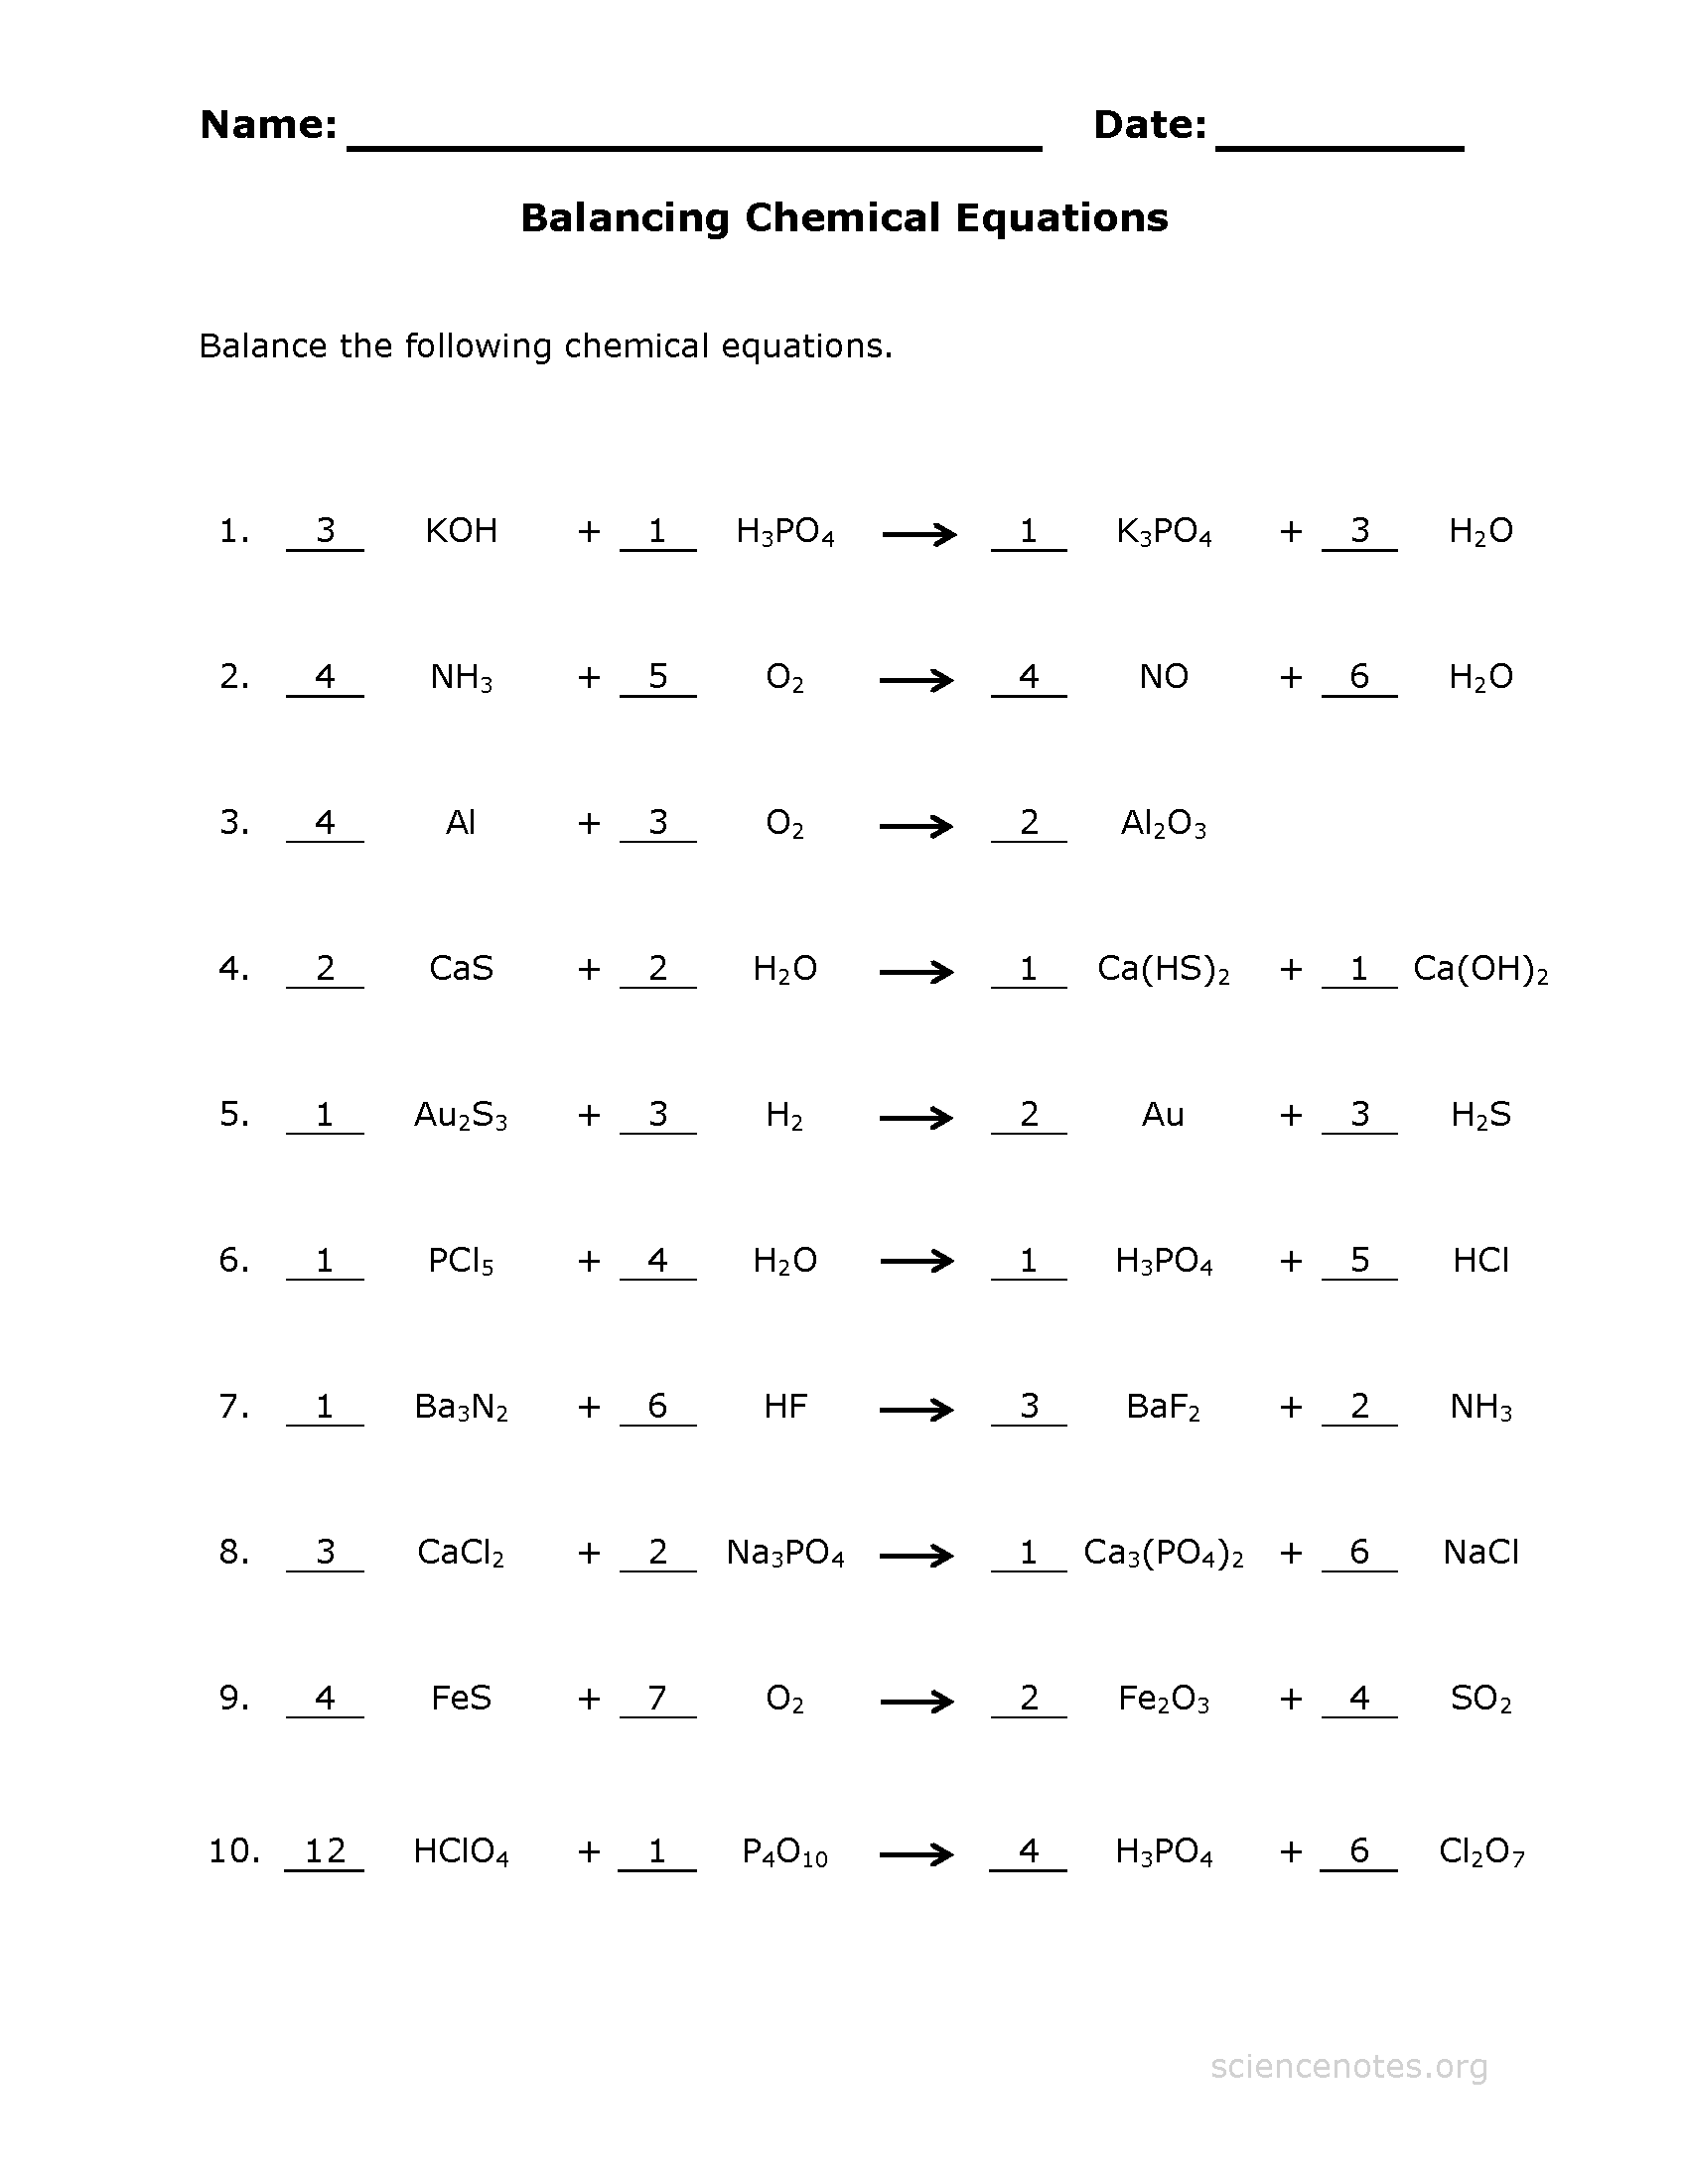 worksheet Balancing Chemical Equations Practice Worksheet balancing chemical equations practice sheet to see the completed check out our other equation worksheets